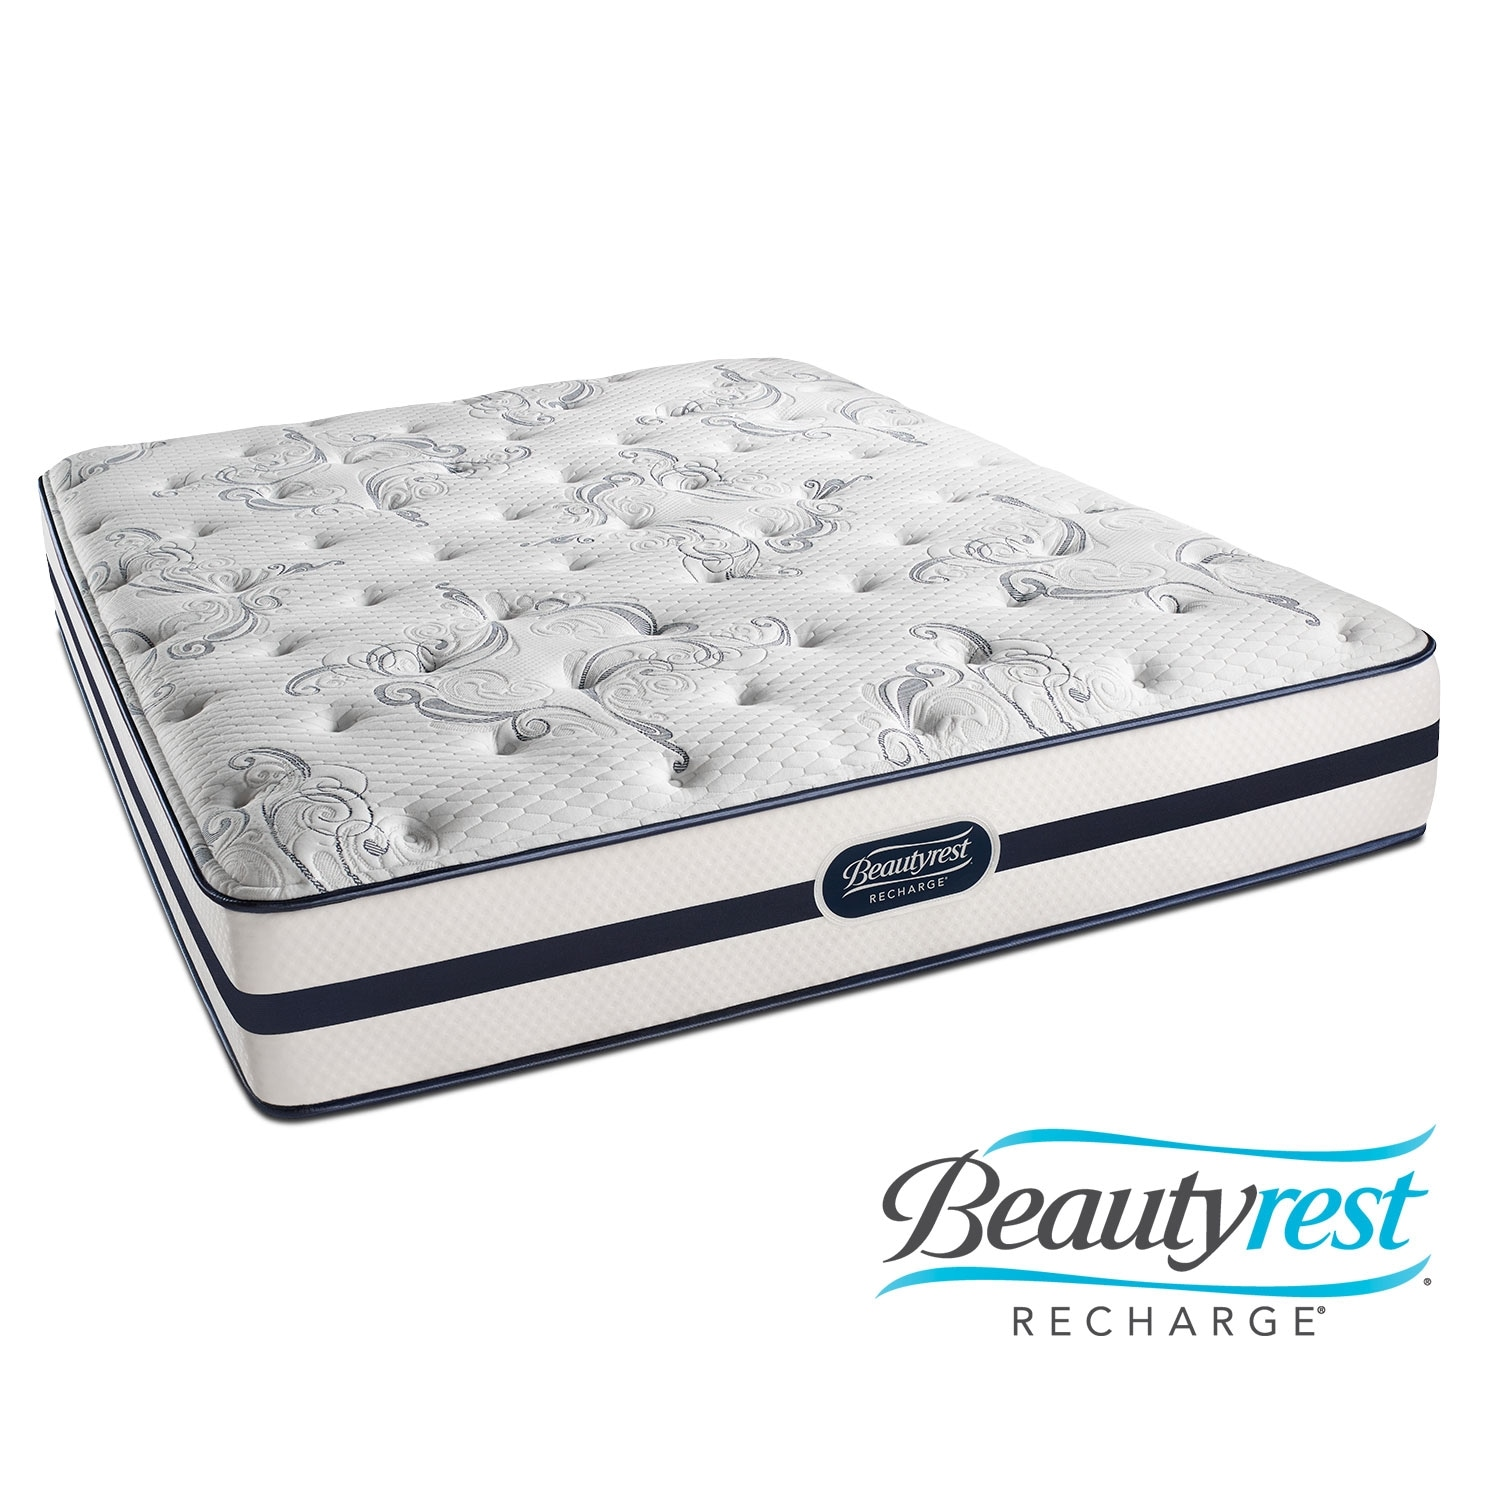 Mattresses and Bedding - Justine Plush King Mattress